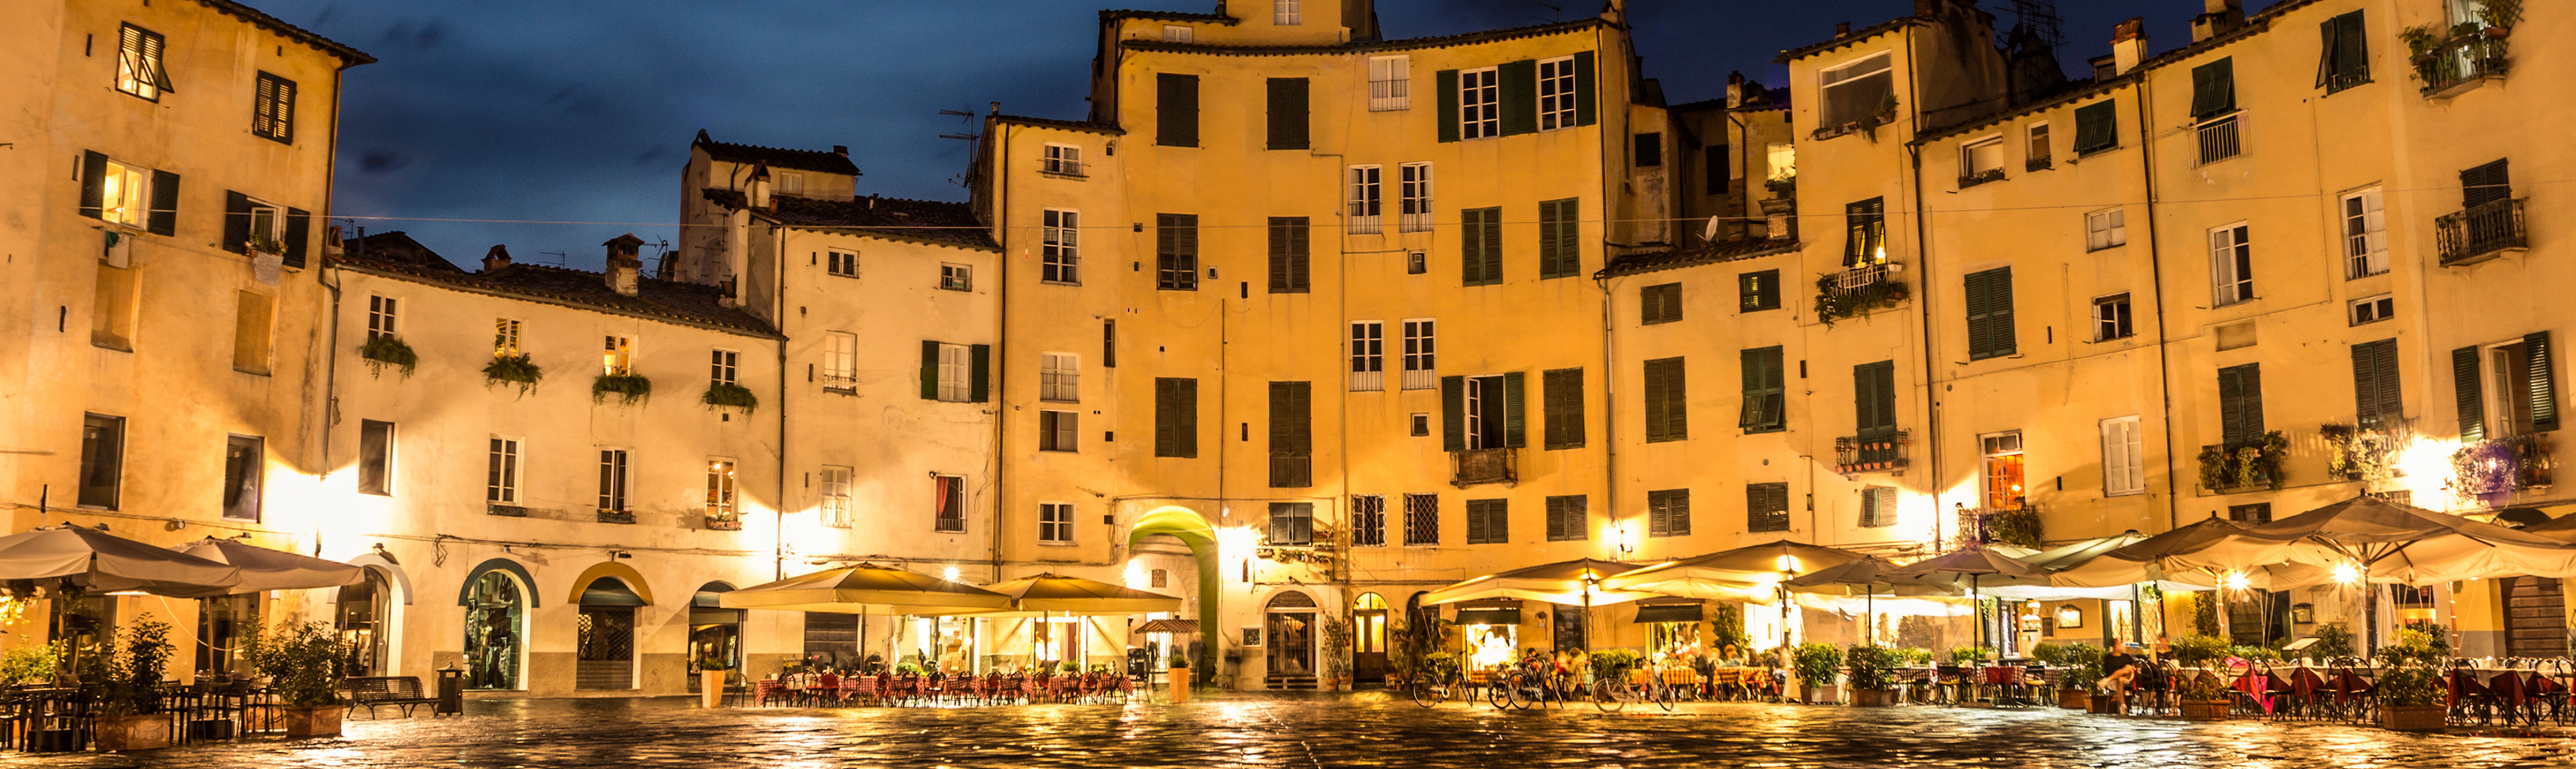 Evening lights illuminate the Piazza Dell'Anfiteatro in Lucca, Italy